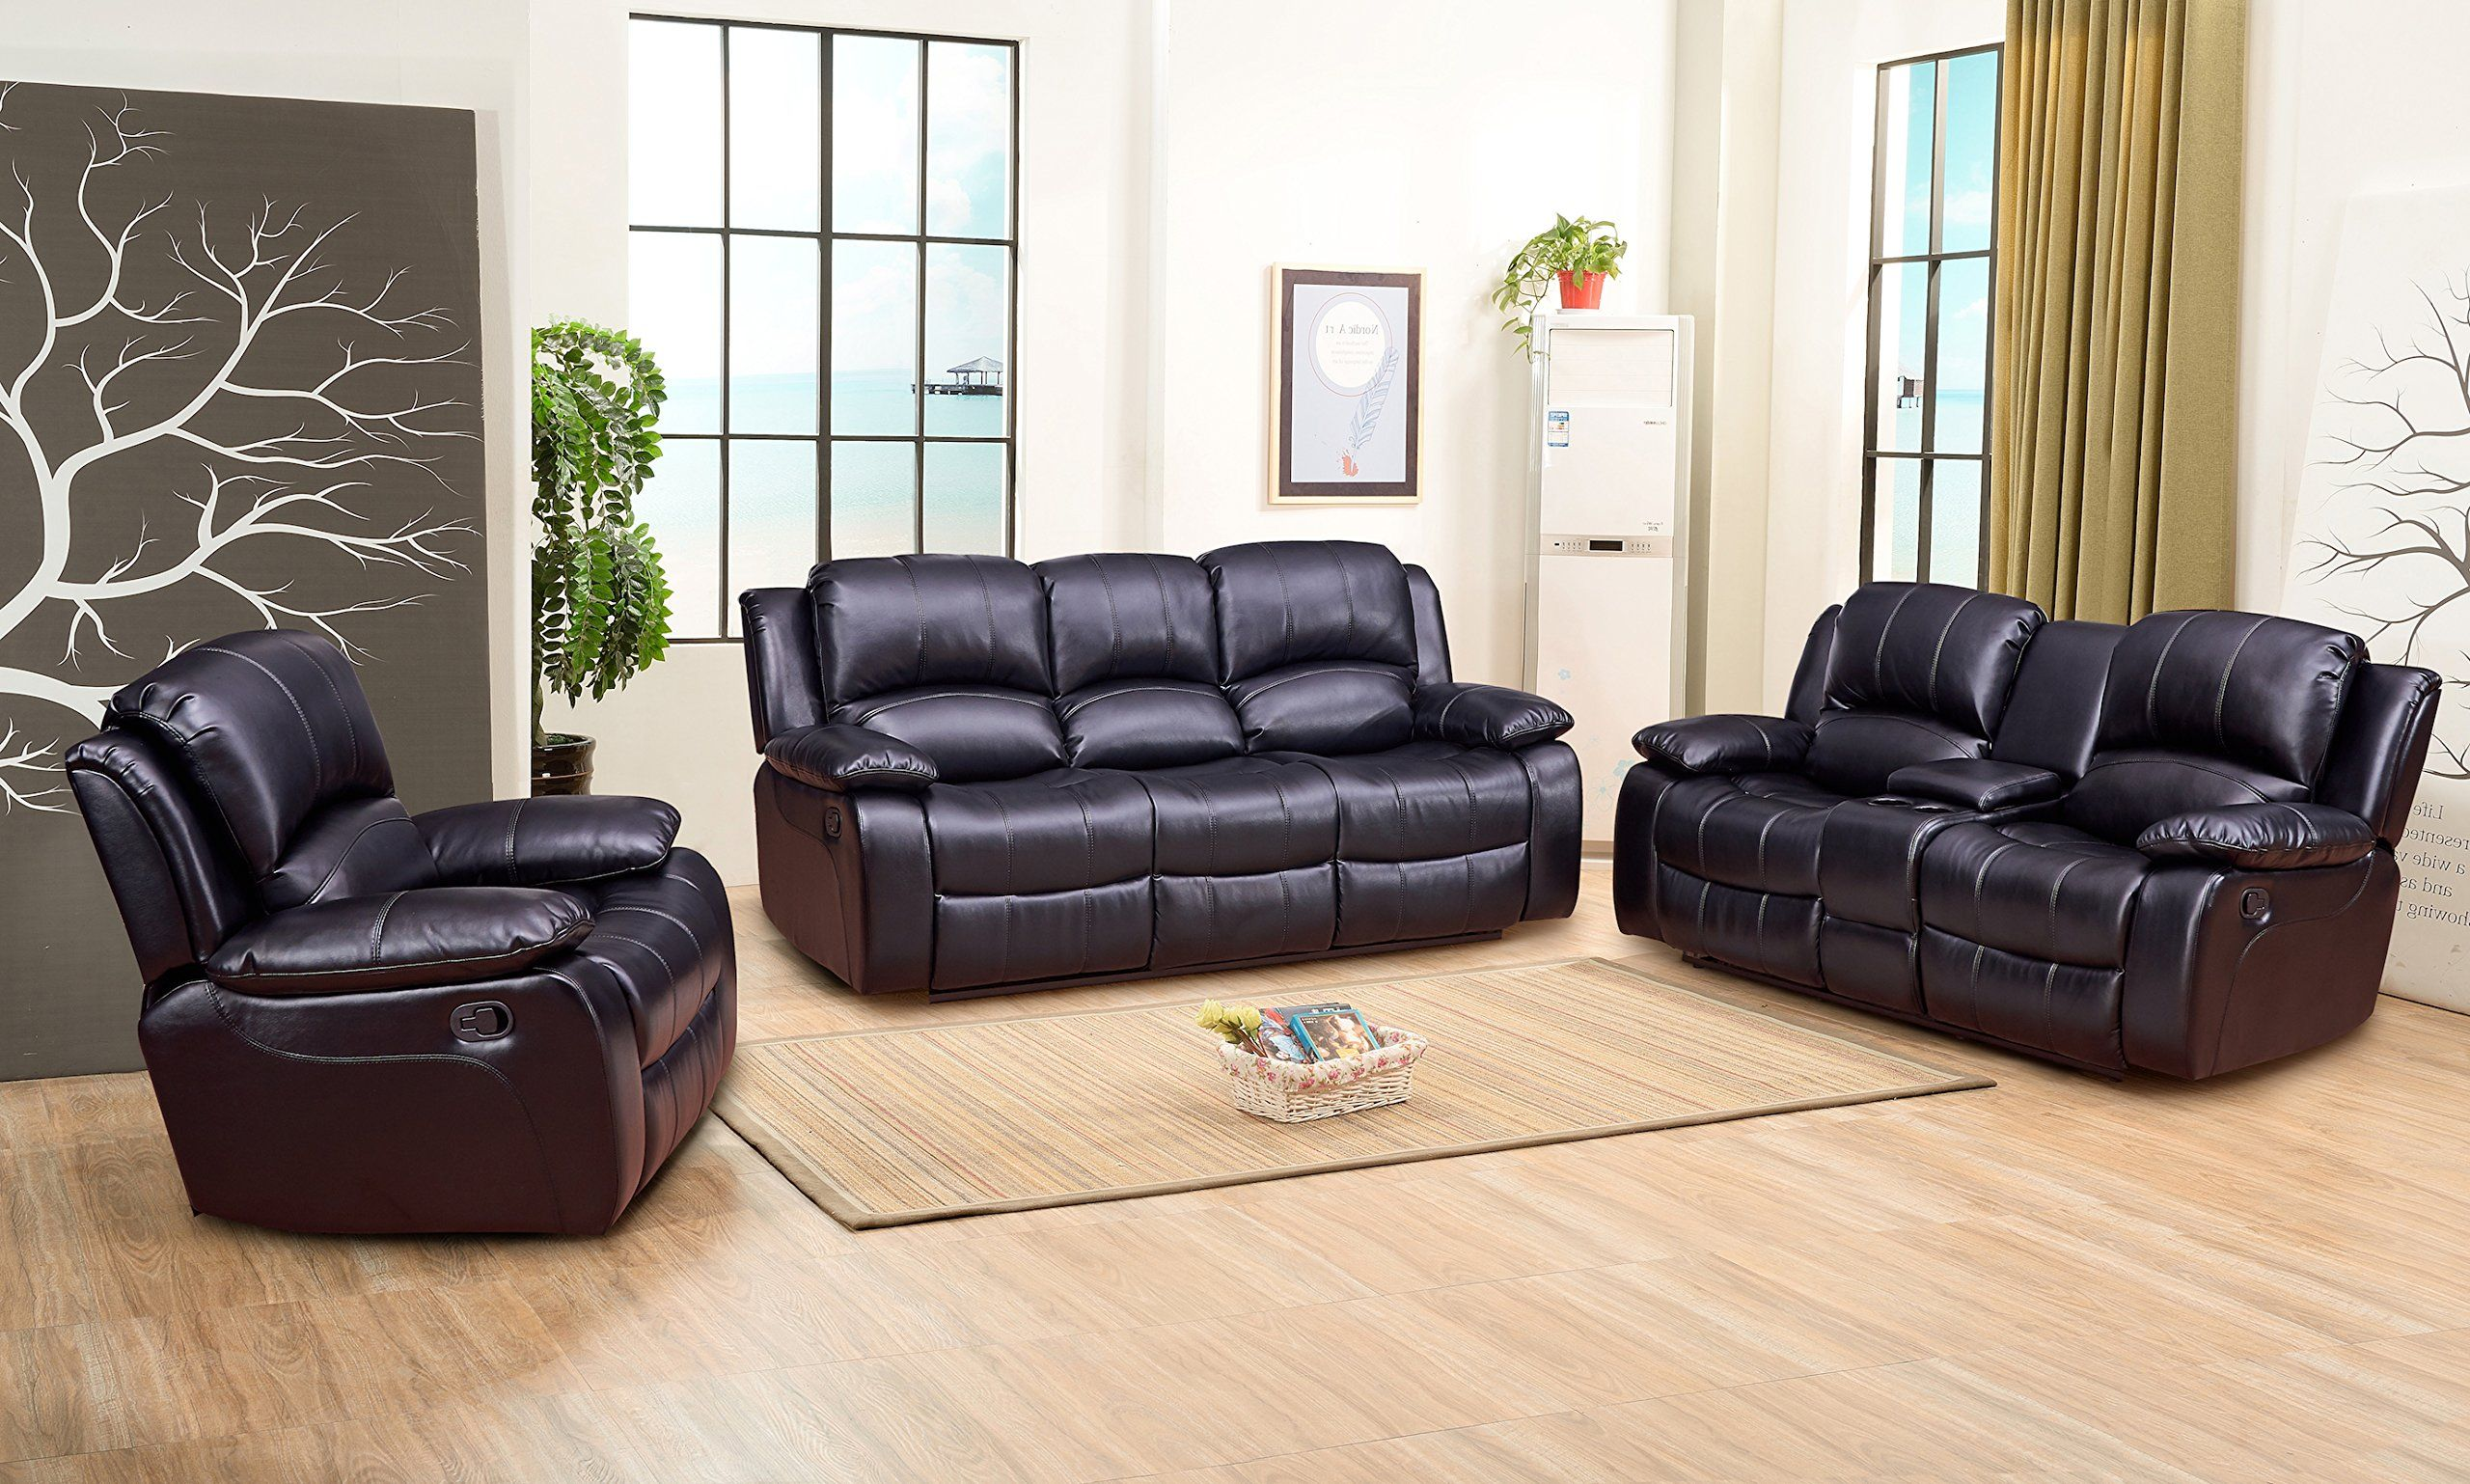 Best Betsy Furniture 3Pc Bonded Leather Recliner Set Living Room Set In Black Sofa Loveseat Cha… 3 400 x 300